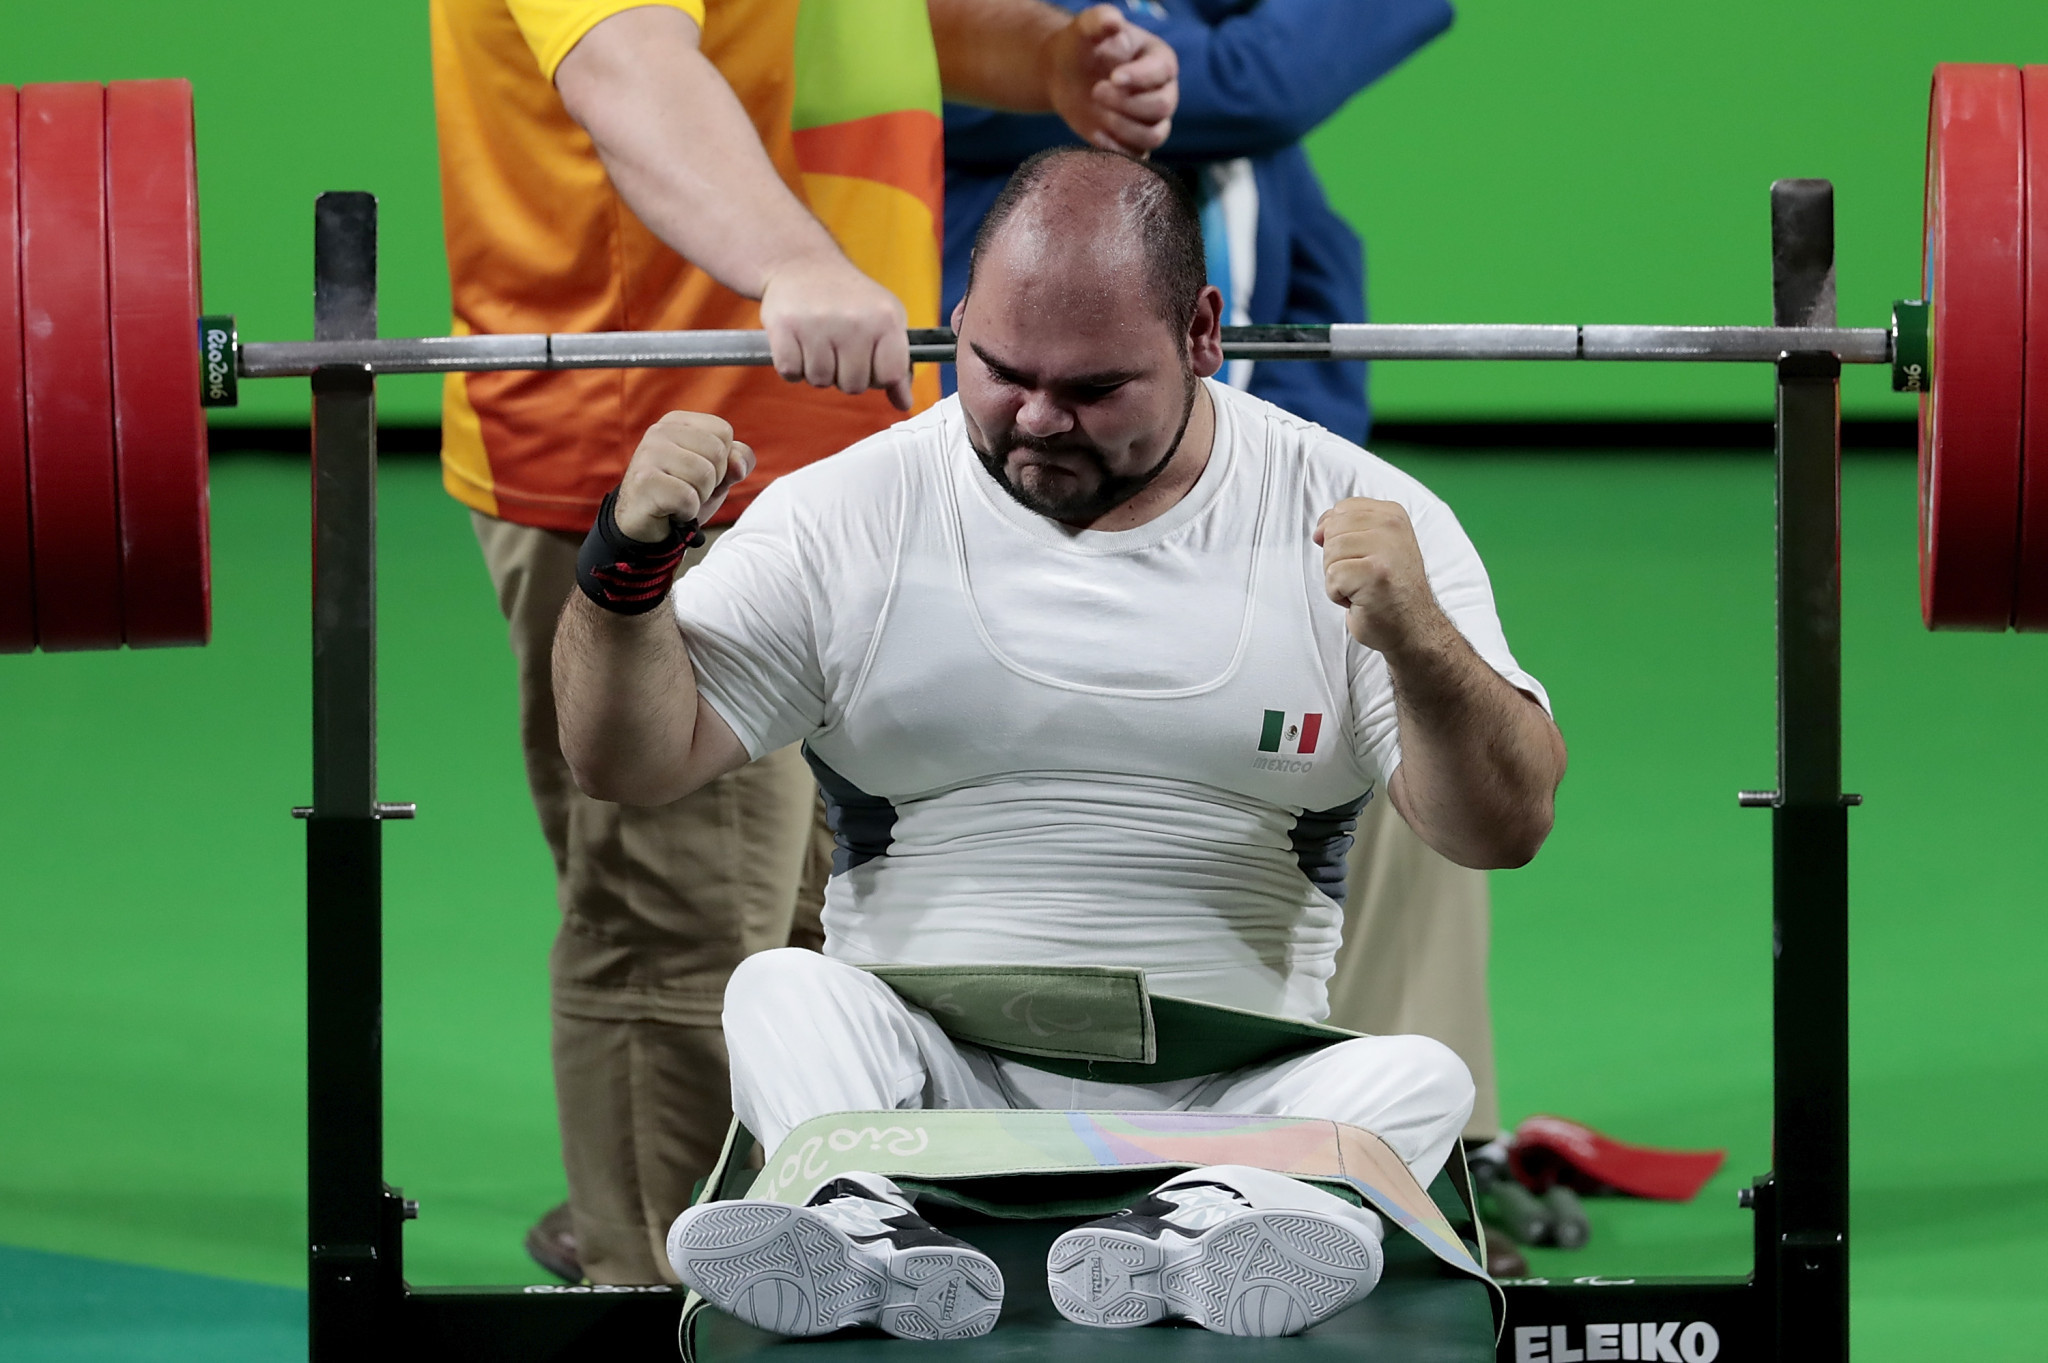 Mexican powerlifter wins Americas Paralympic Committee Athlete of the Year award for second consecutive time